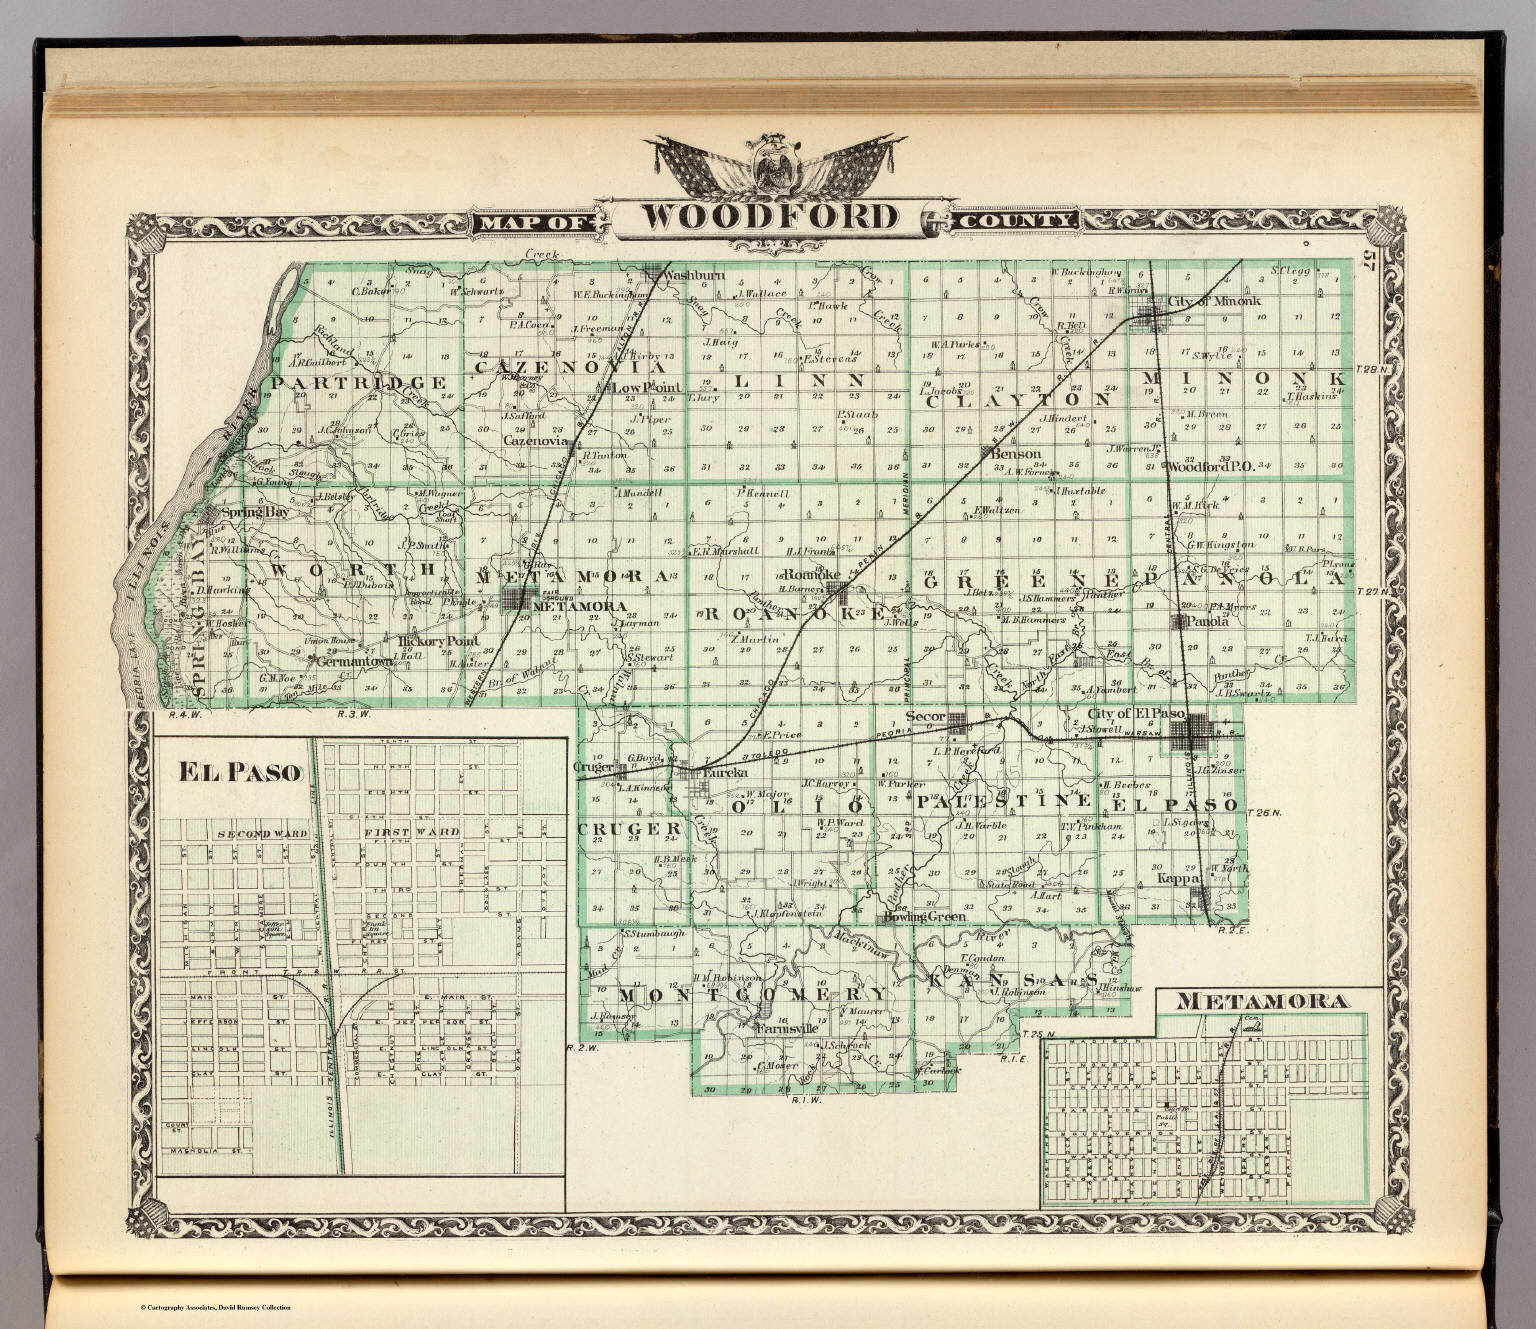 Illinois woodford county metamora - Map Of Woodford County El Paso And Metamora David Rumsey Historical Map Collection